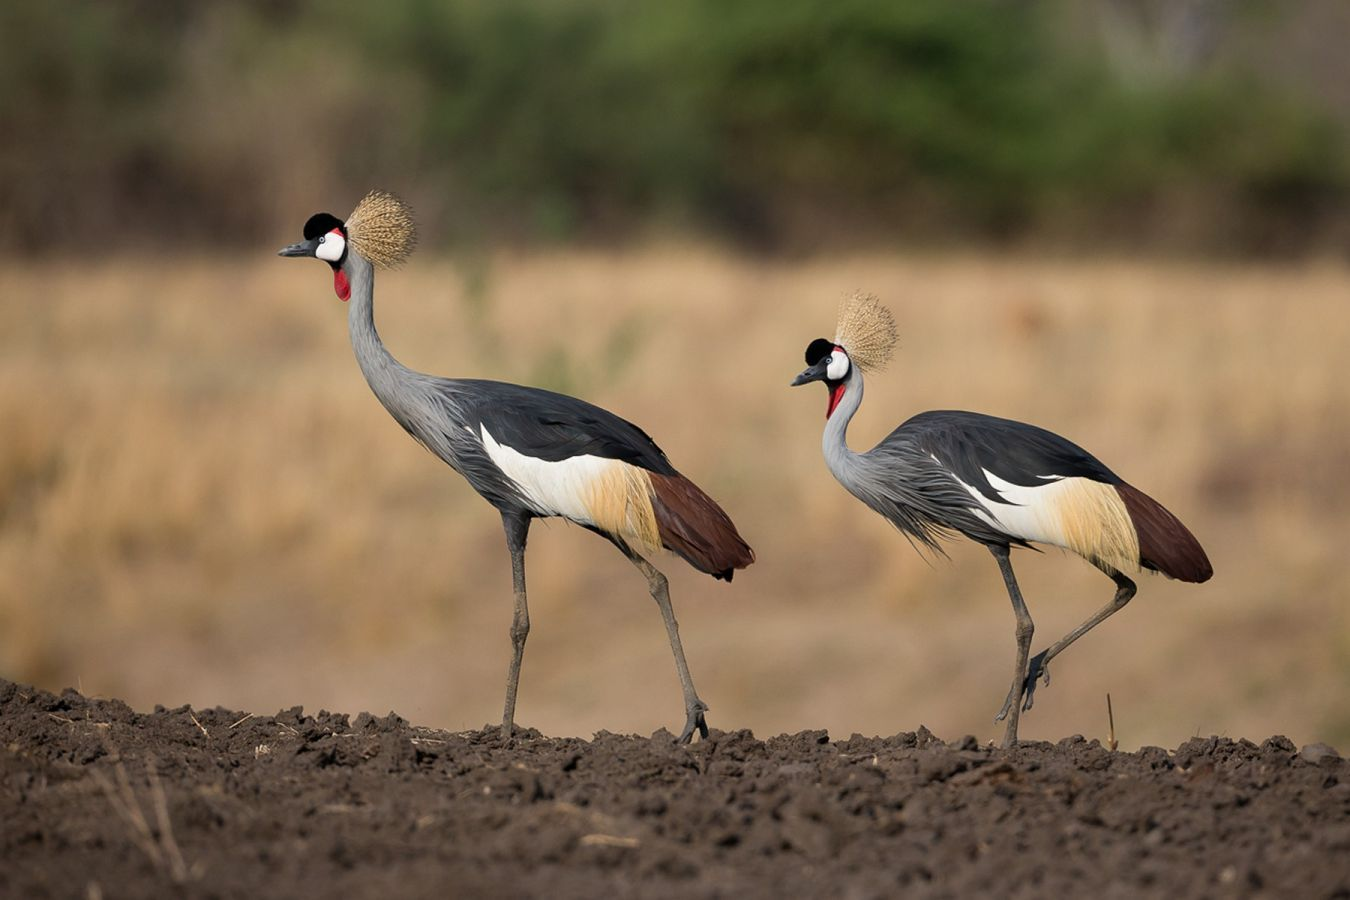 Nkonzi Camp crowned cranes